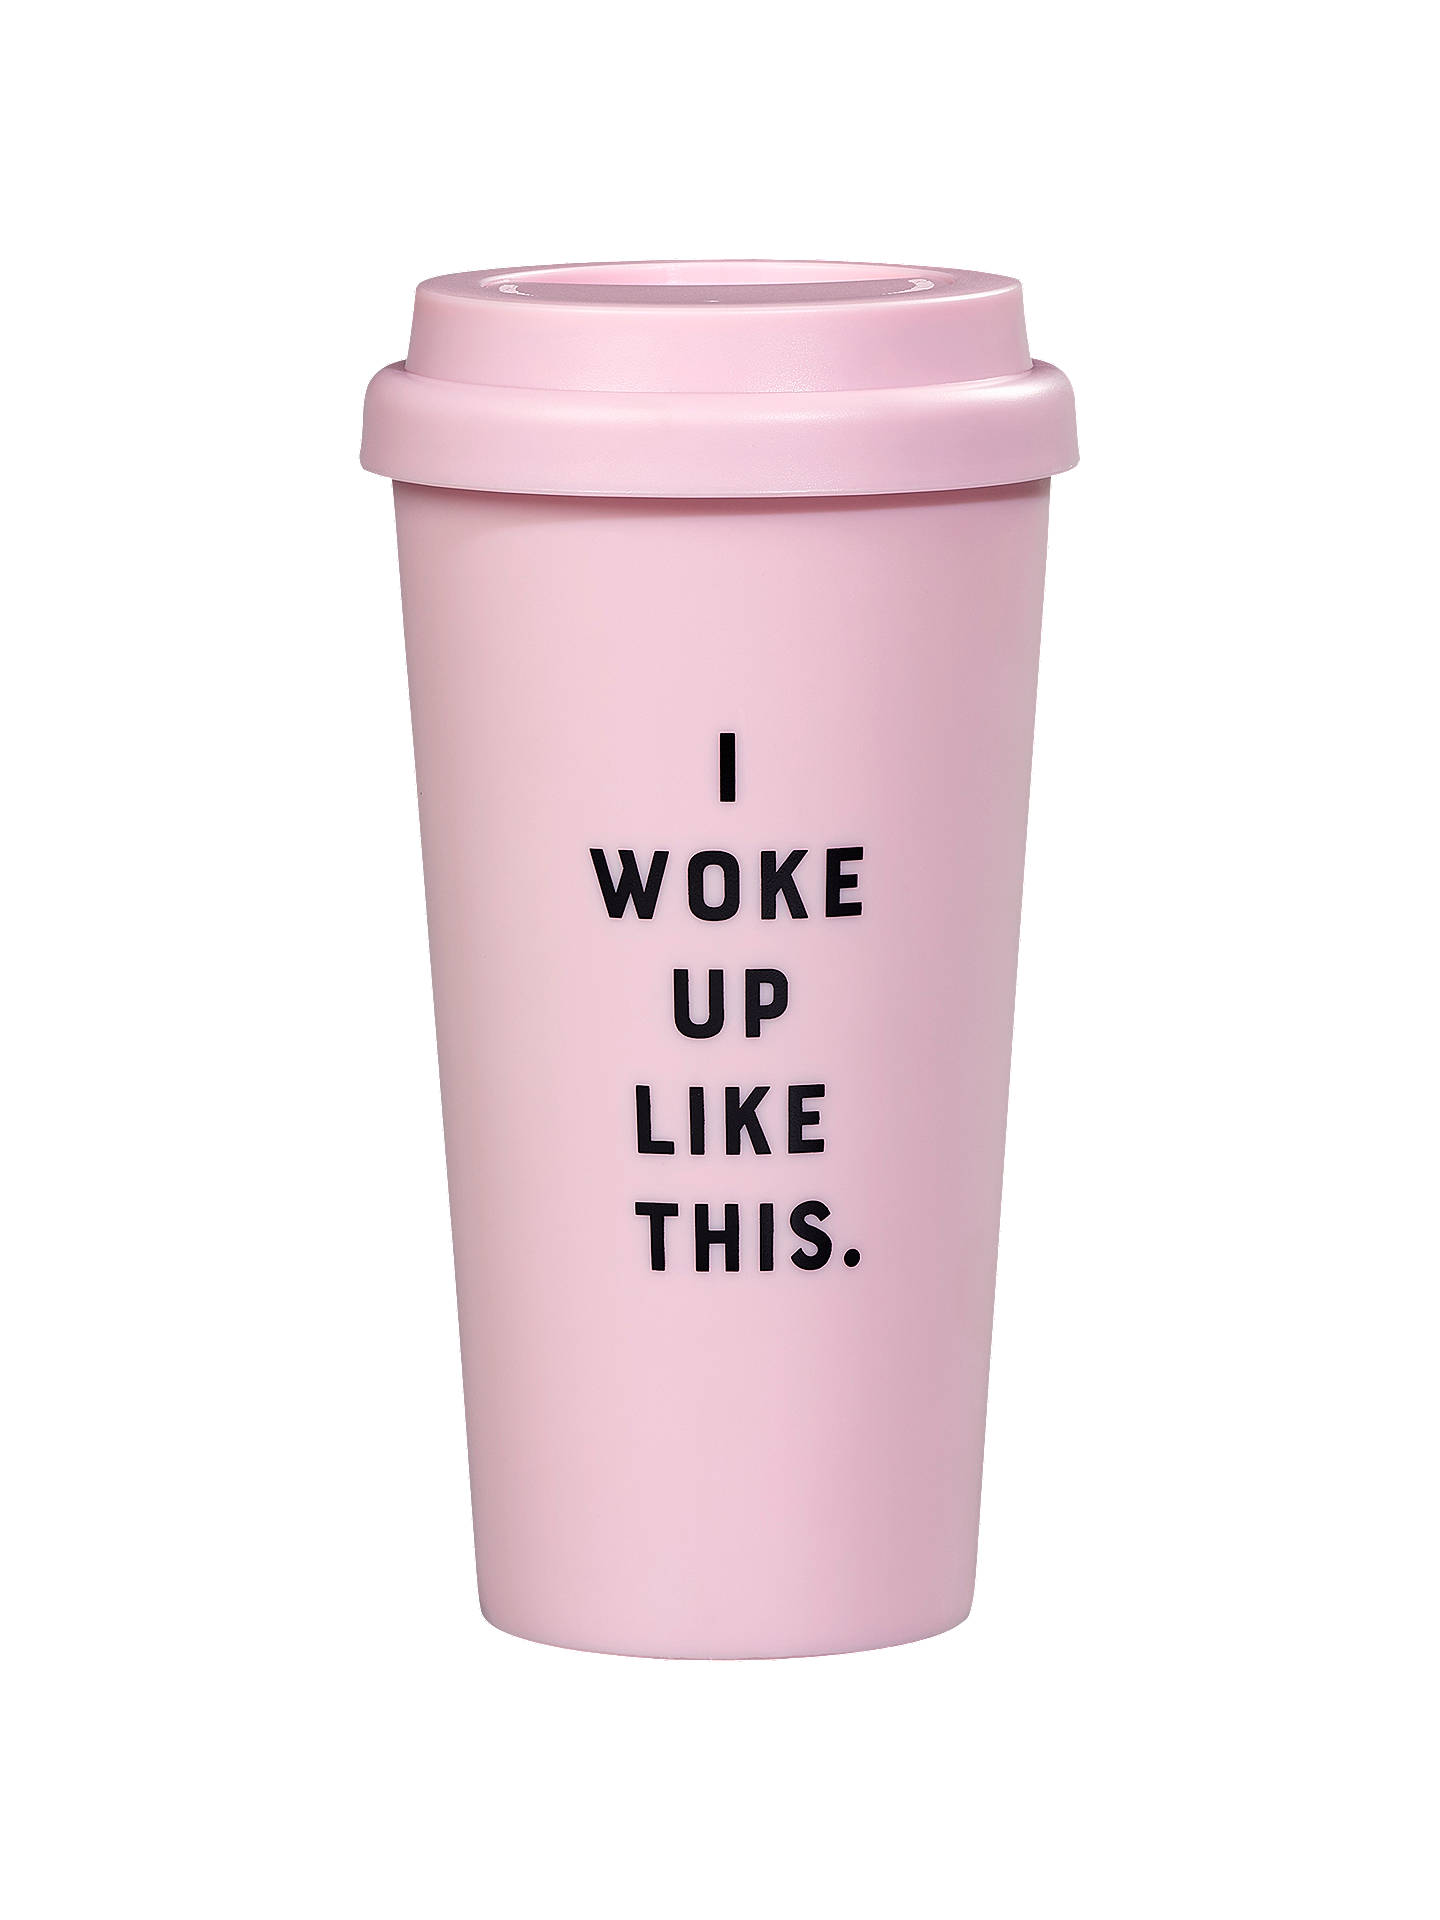 Yes Wake Not MugPink470ml Up 'i This' Like Travel Did Studio UVMpzqS